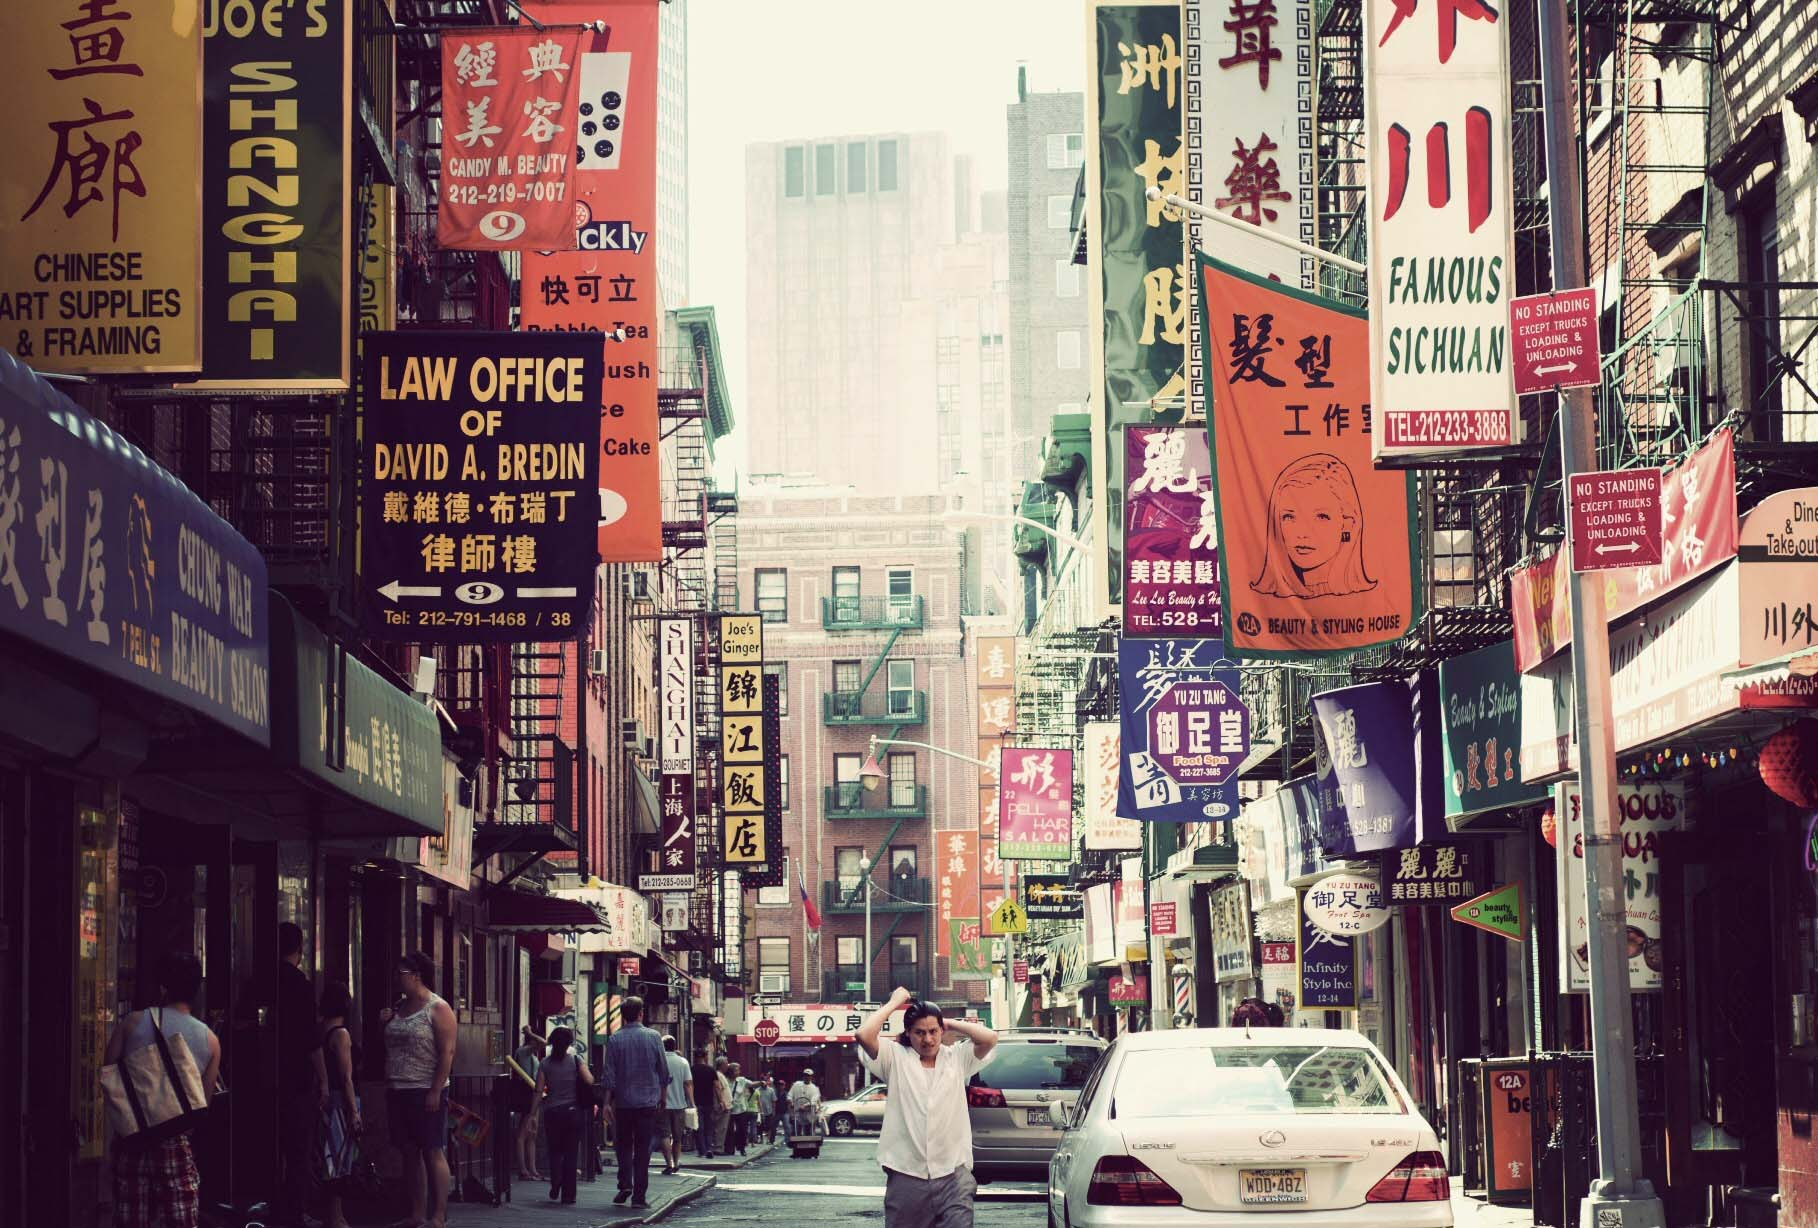 Manhattan's Chinatown - One of the best places for Chinese food in New York